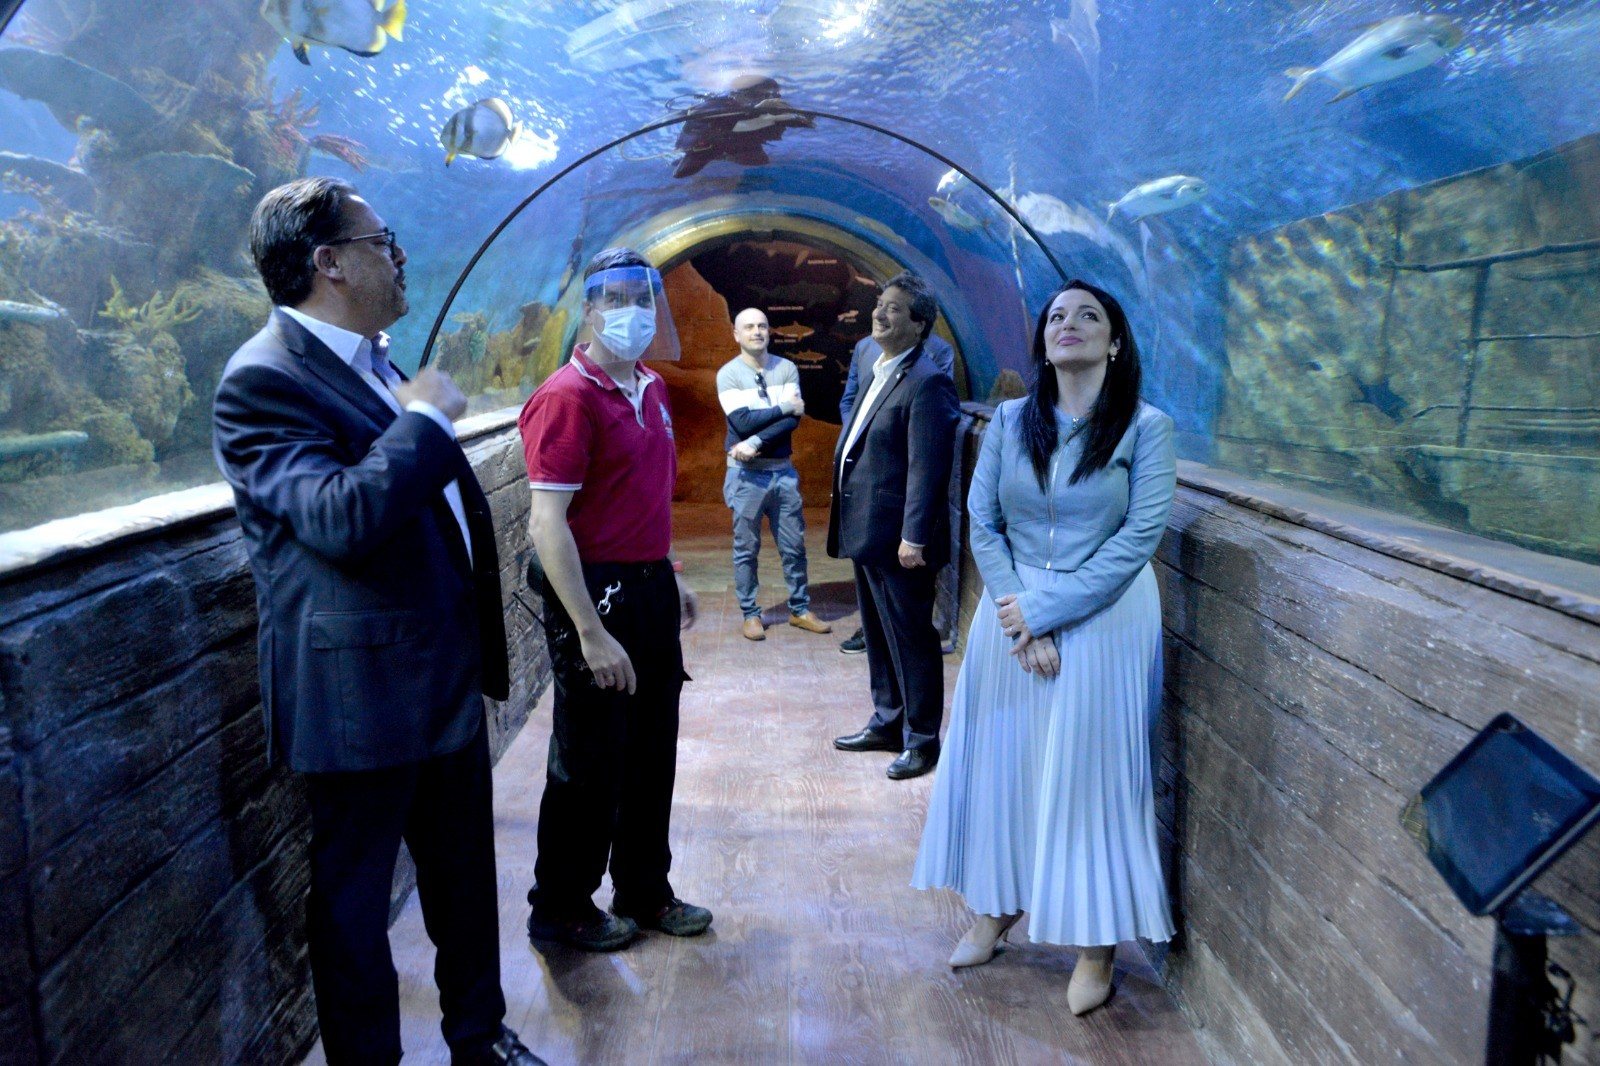 PRESS RELEASE BY THE MINISTRY FOR TOURISM AND CONSUMER PROTECTION   Over €600,000 investment at the Malta National Aquarium during COVID-19